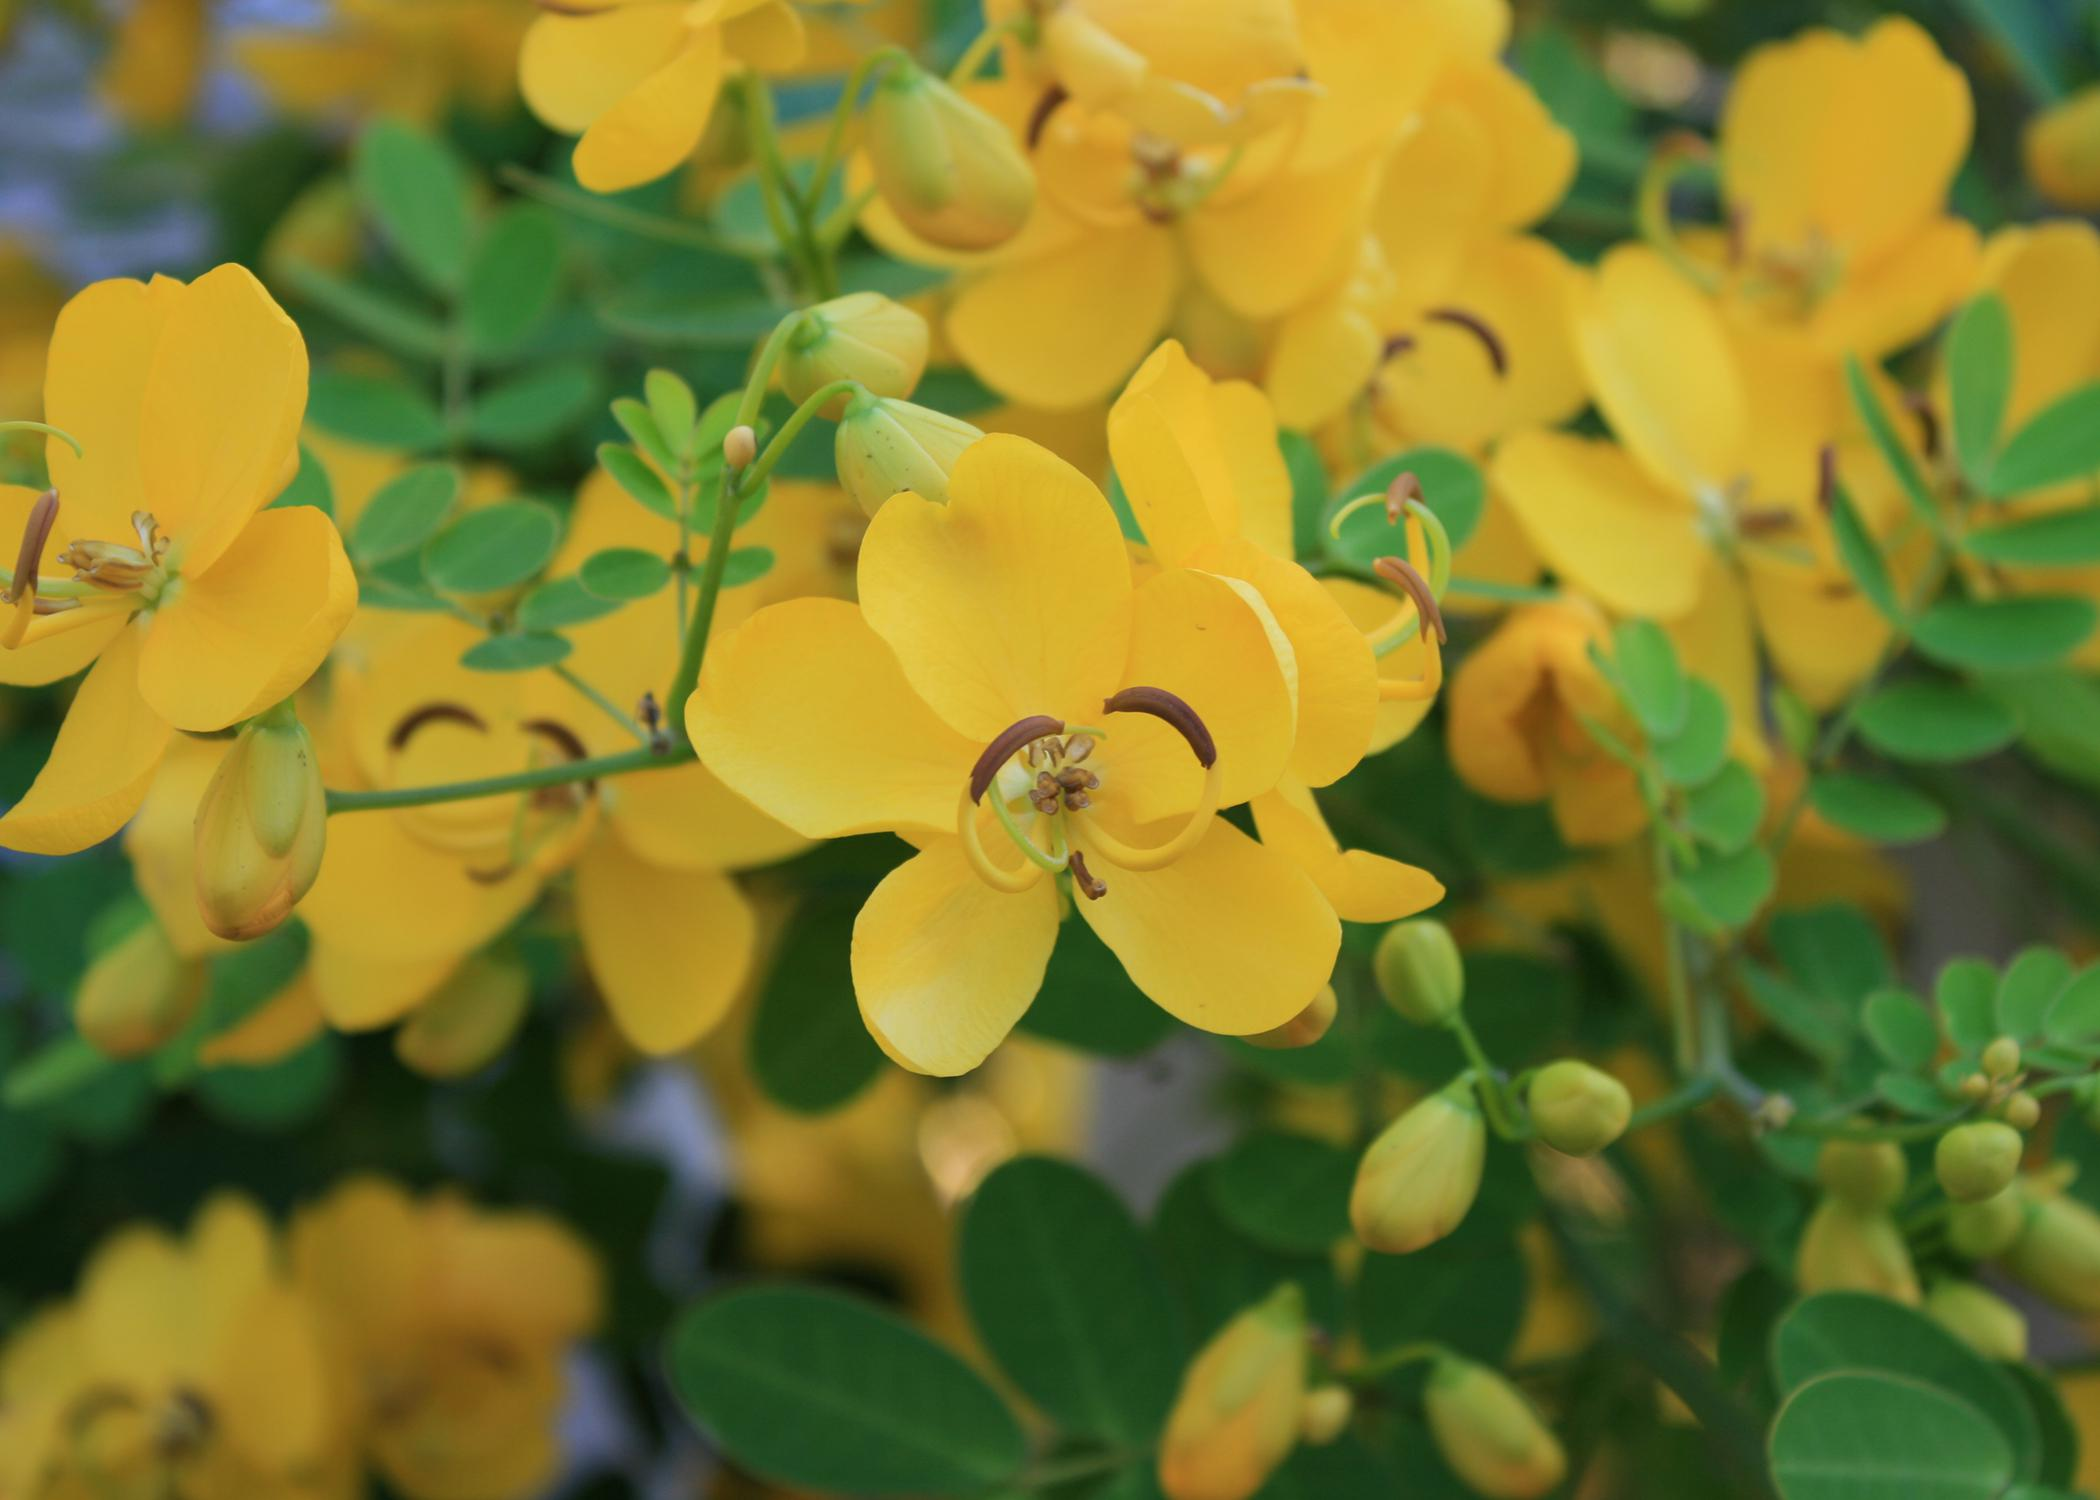 A single, delicate yellow bloom is centered in a frame filled with other yellow blooms and green foliage.